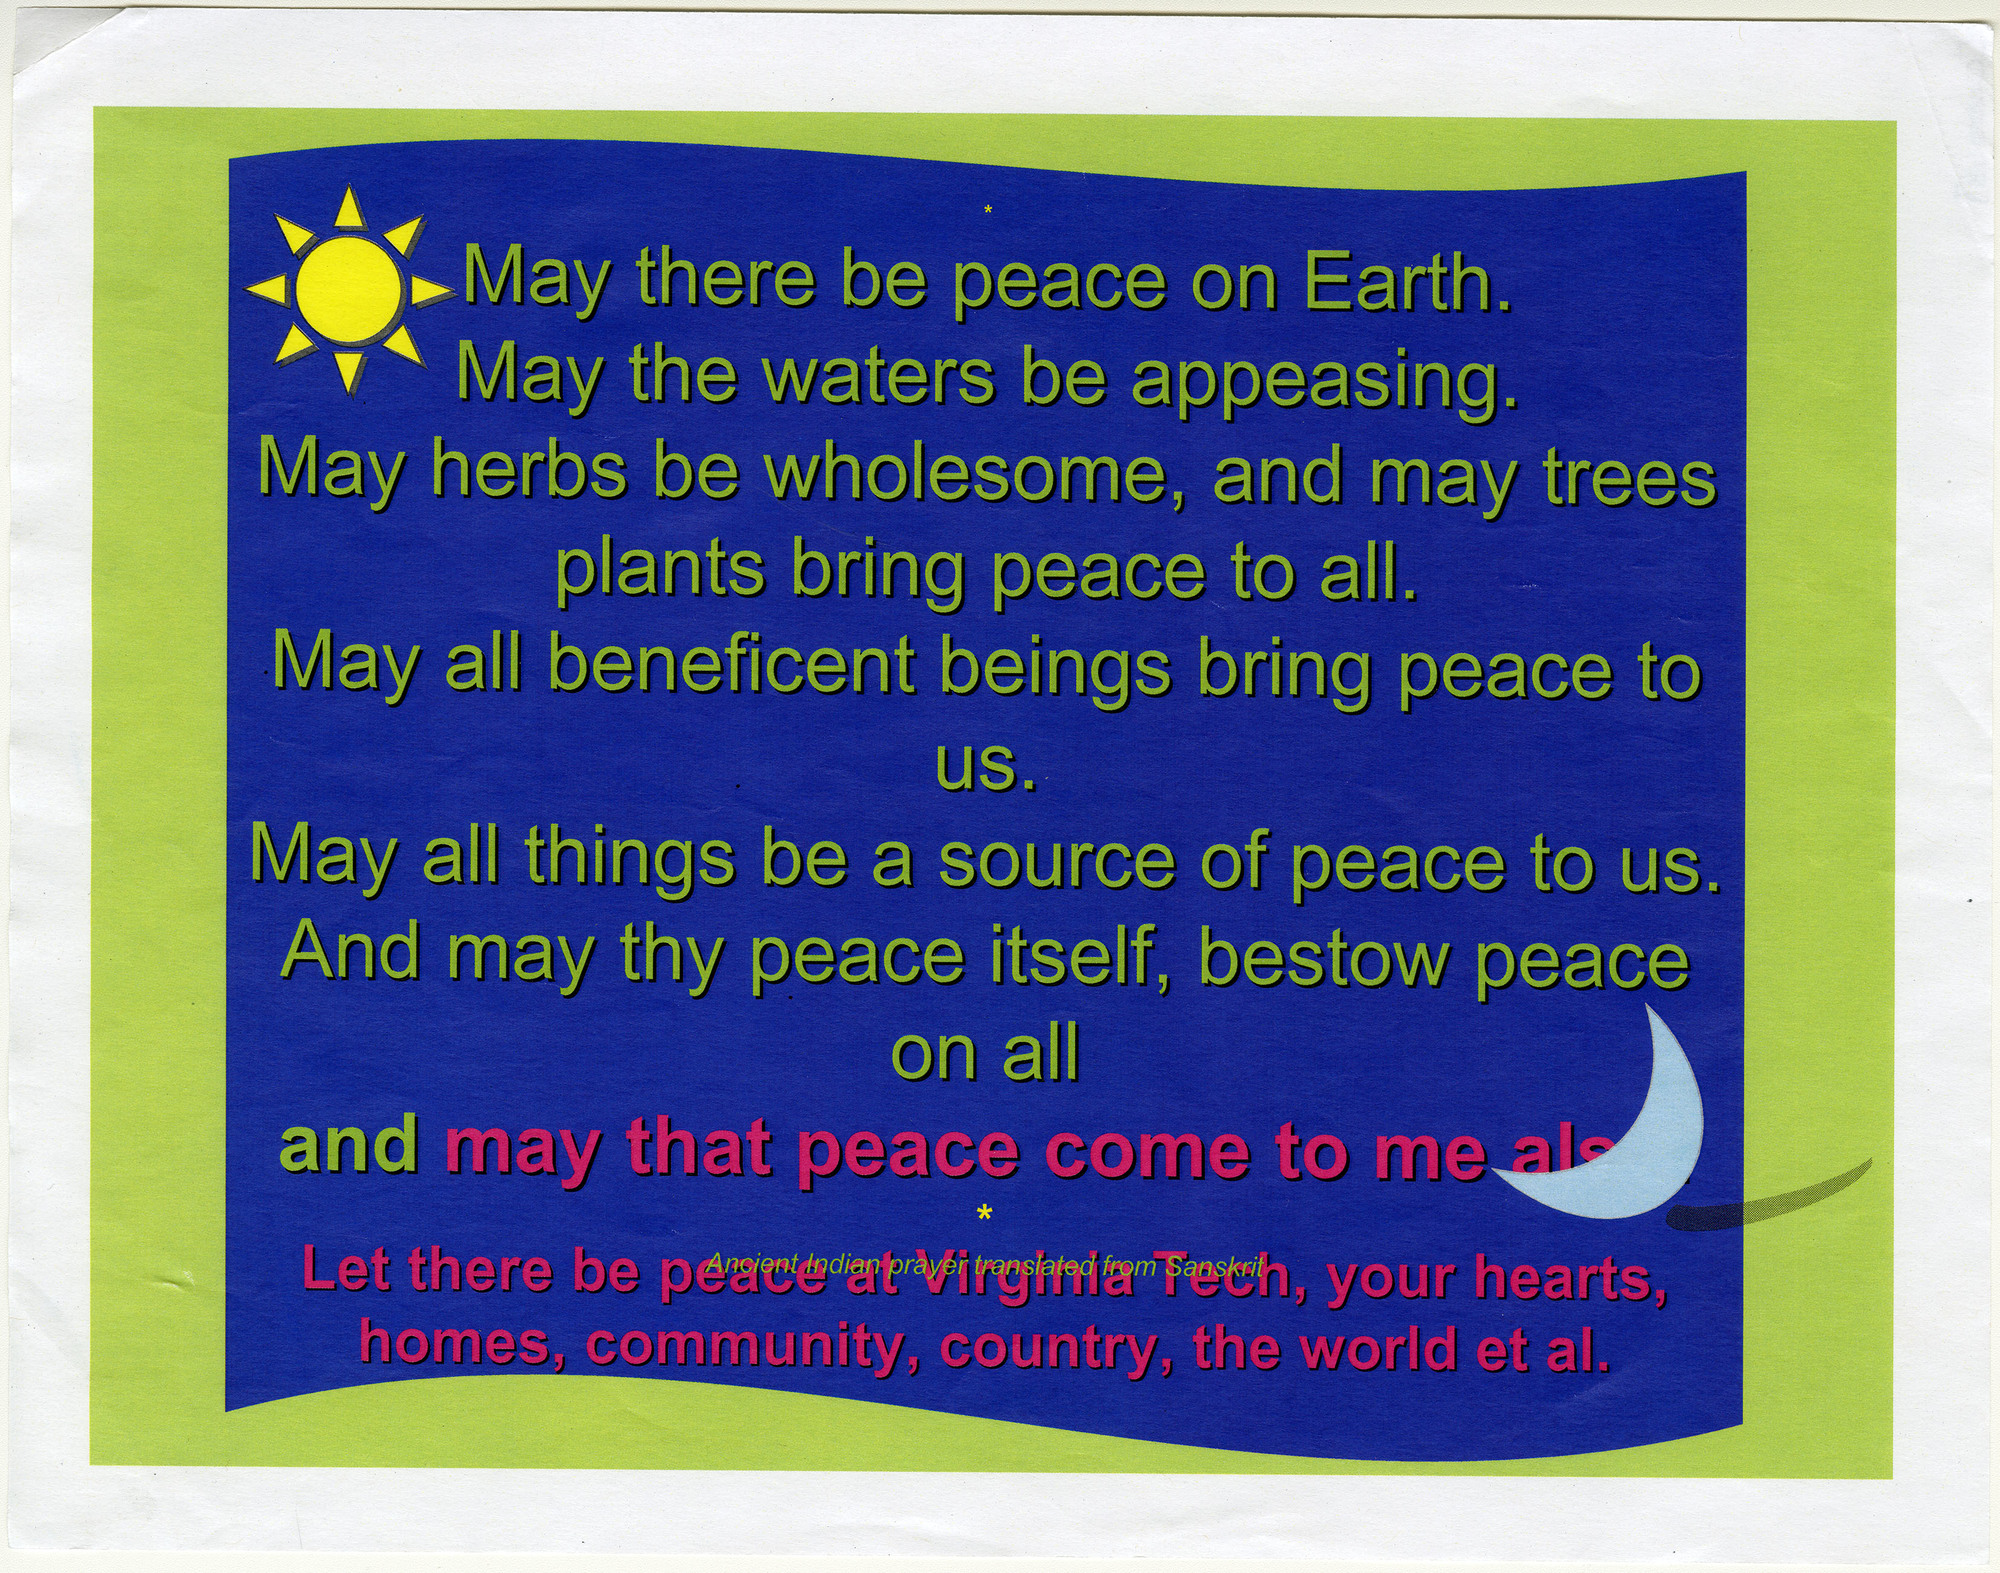 Ms2008_020_April162007Archives_B513_F28_O00068_Poem_Undated.jpg